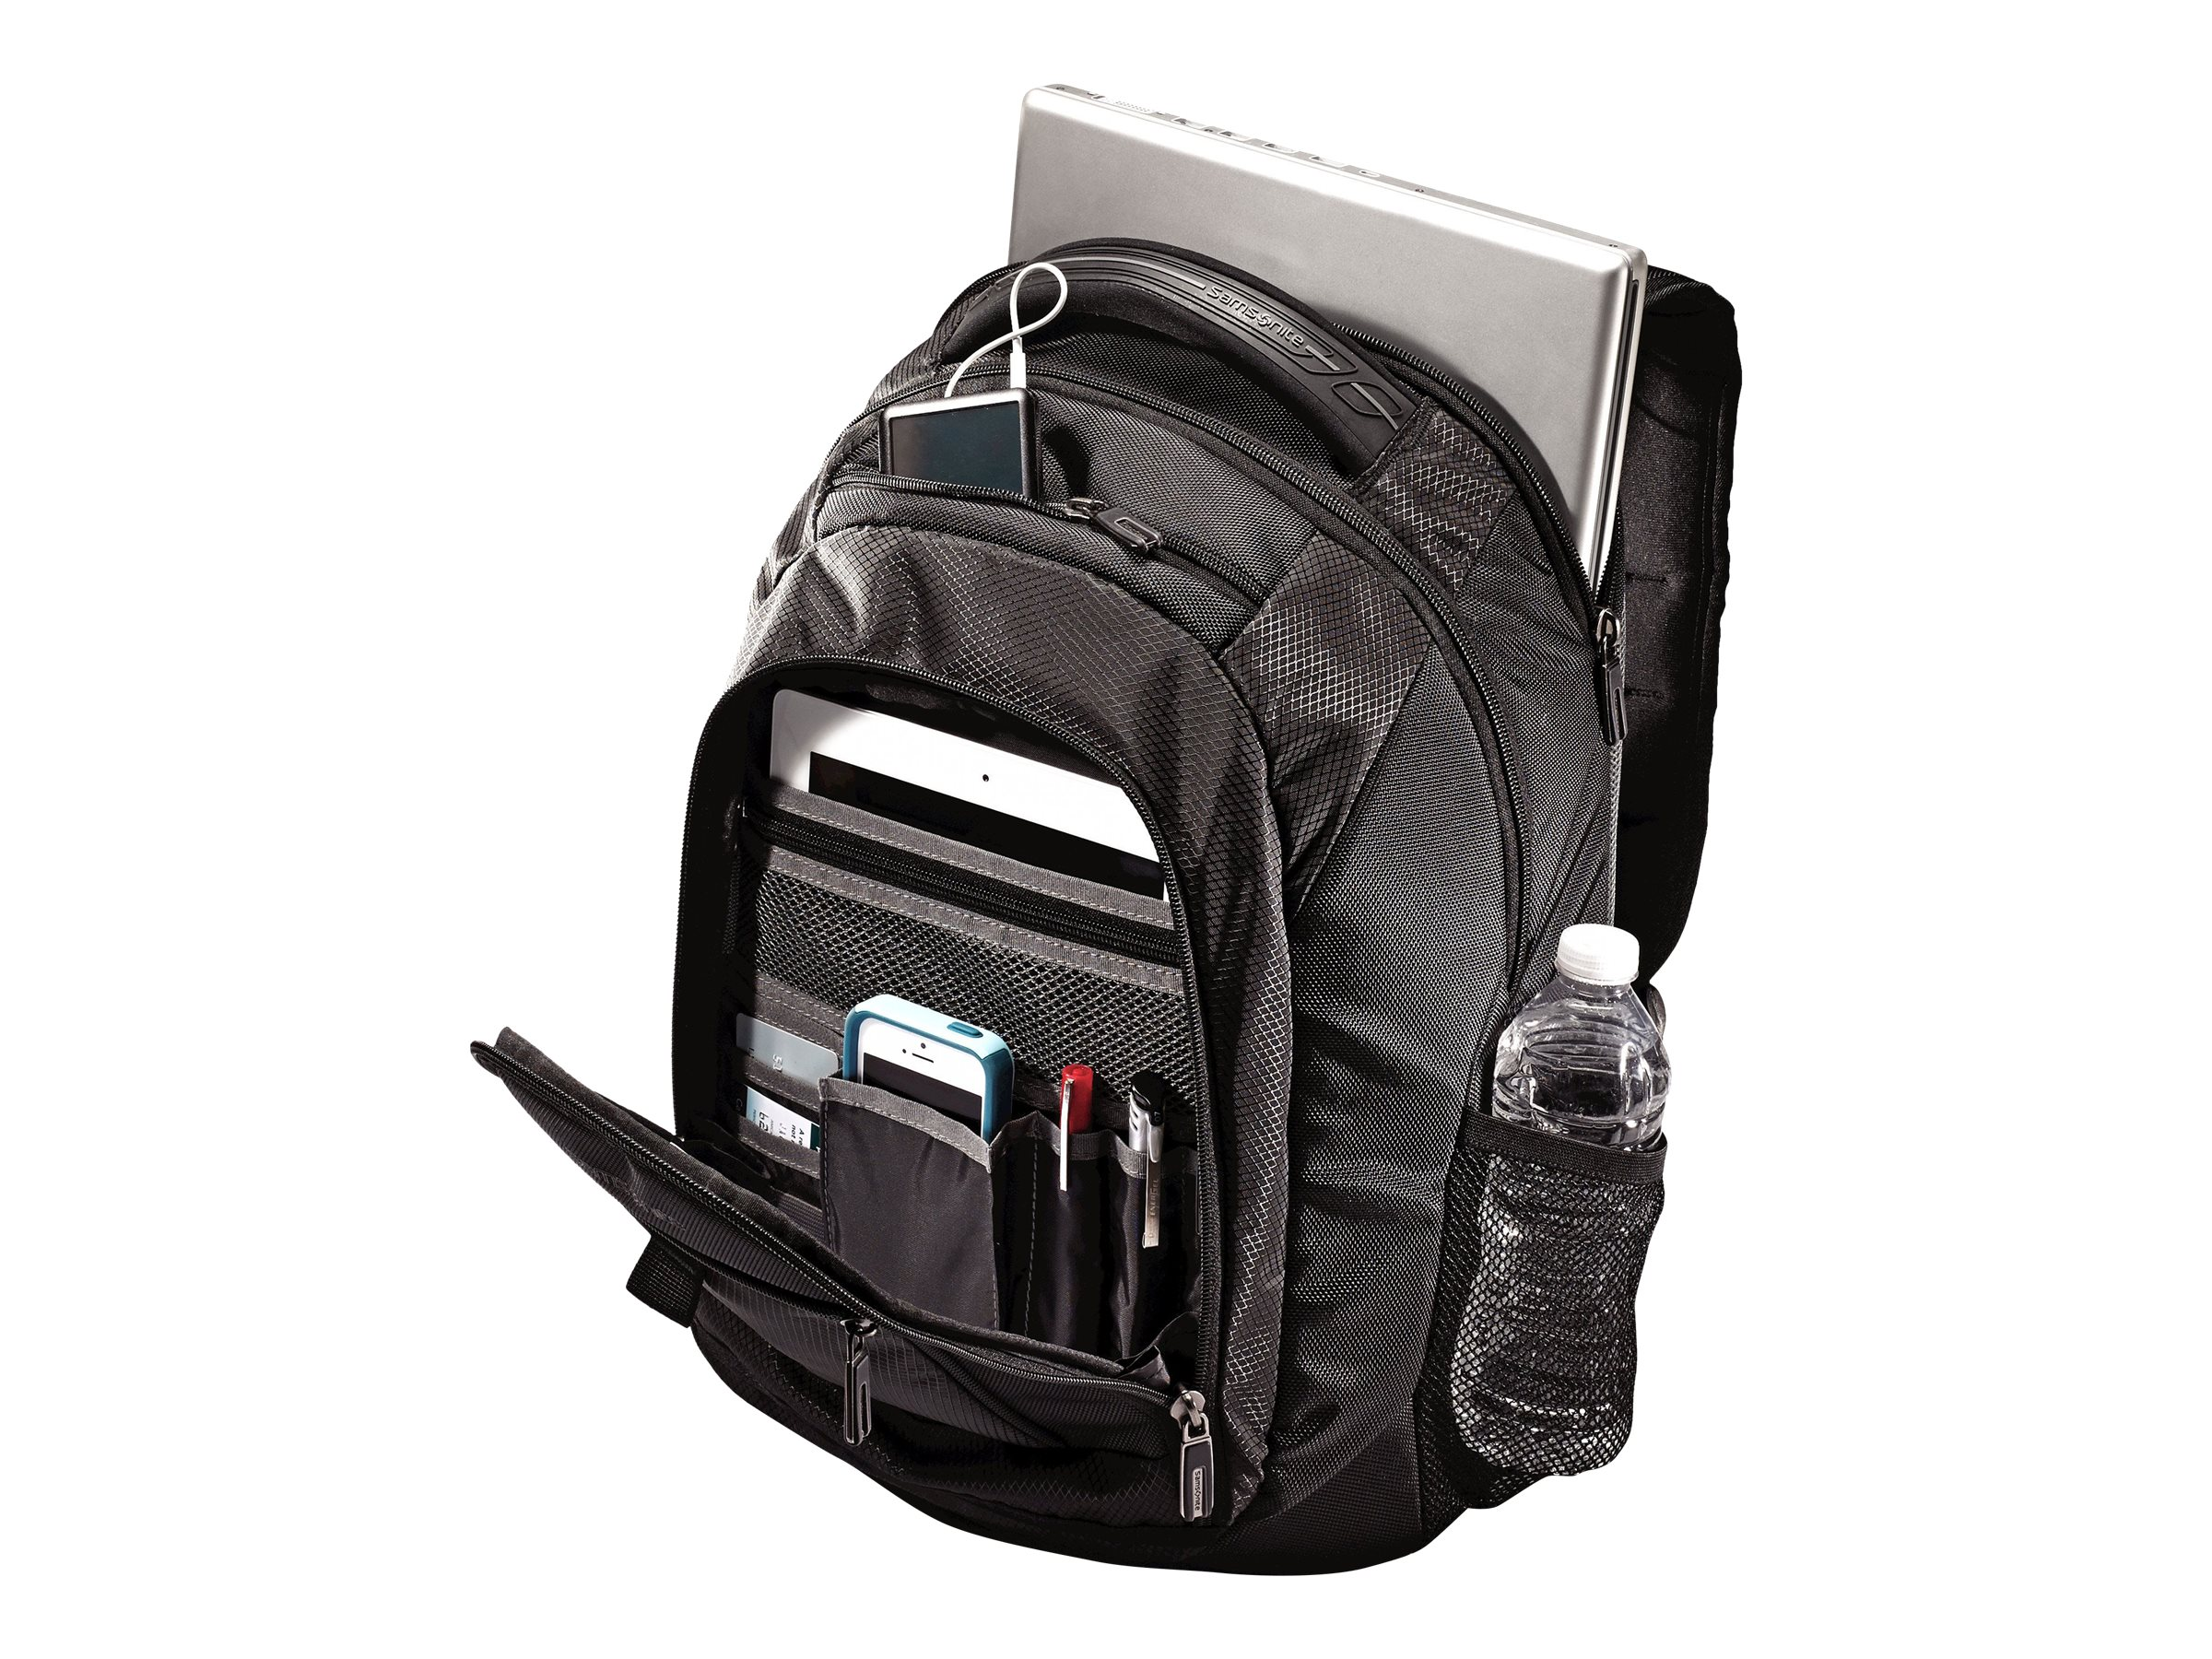 Stephen Gould Tectonic 2 Medium Backpack 15.6, Black